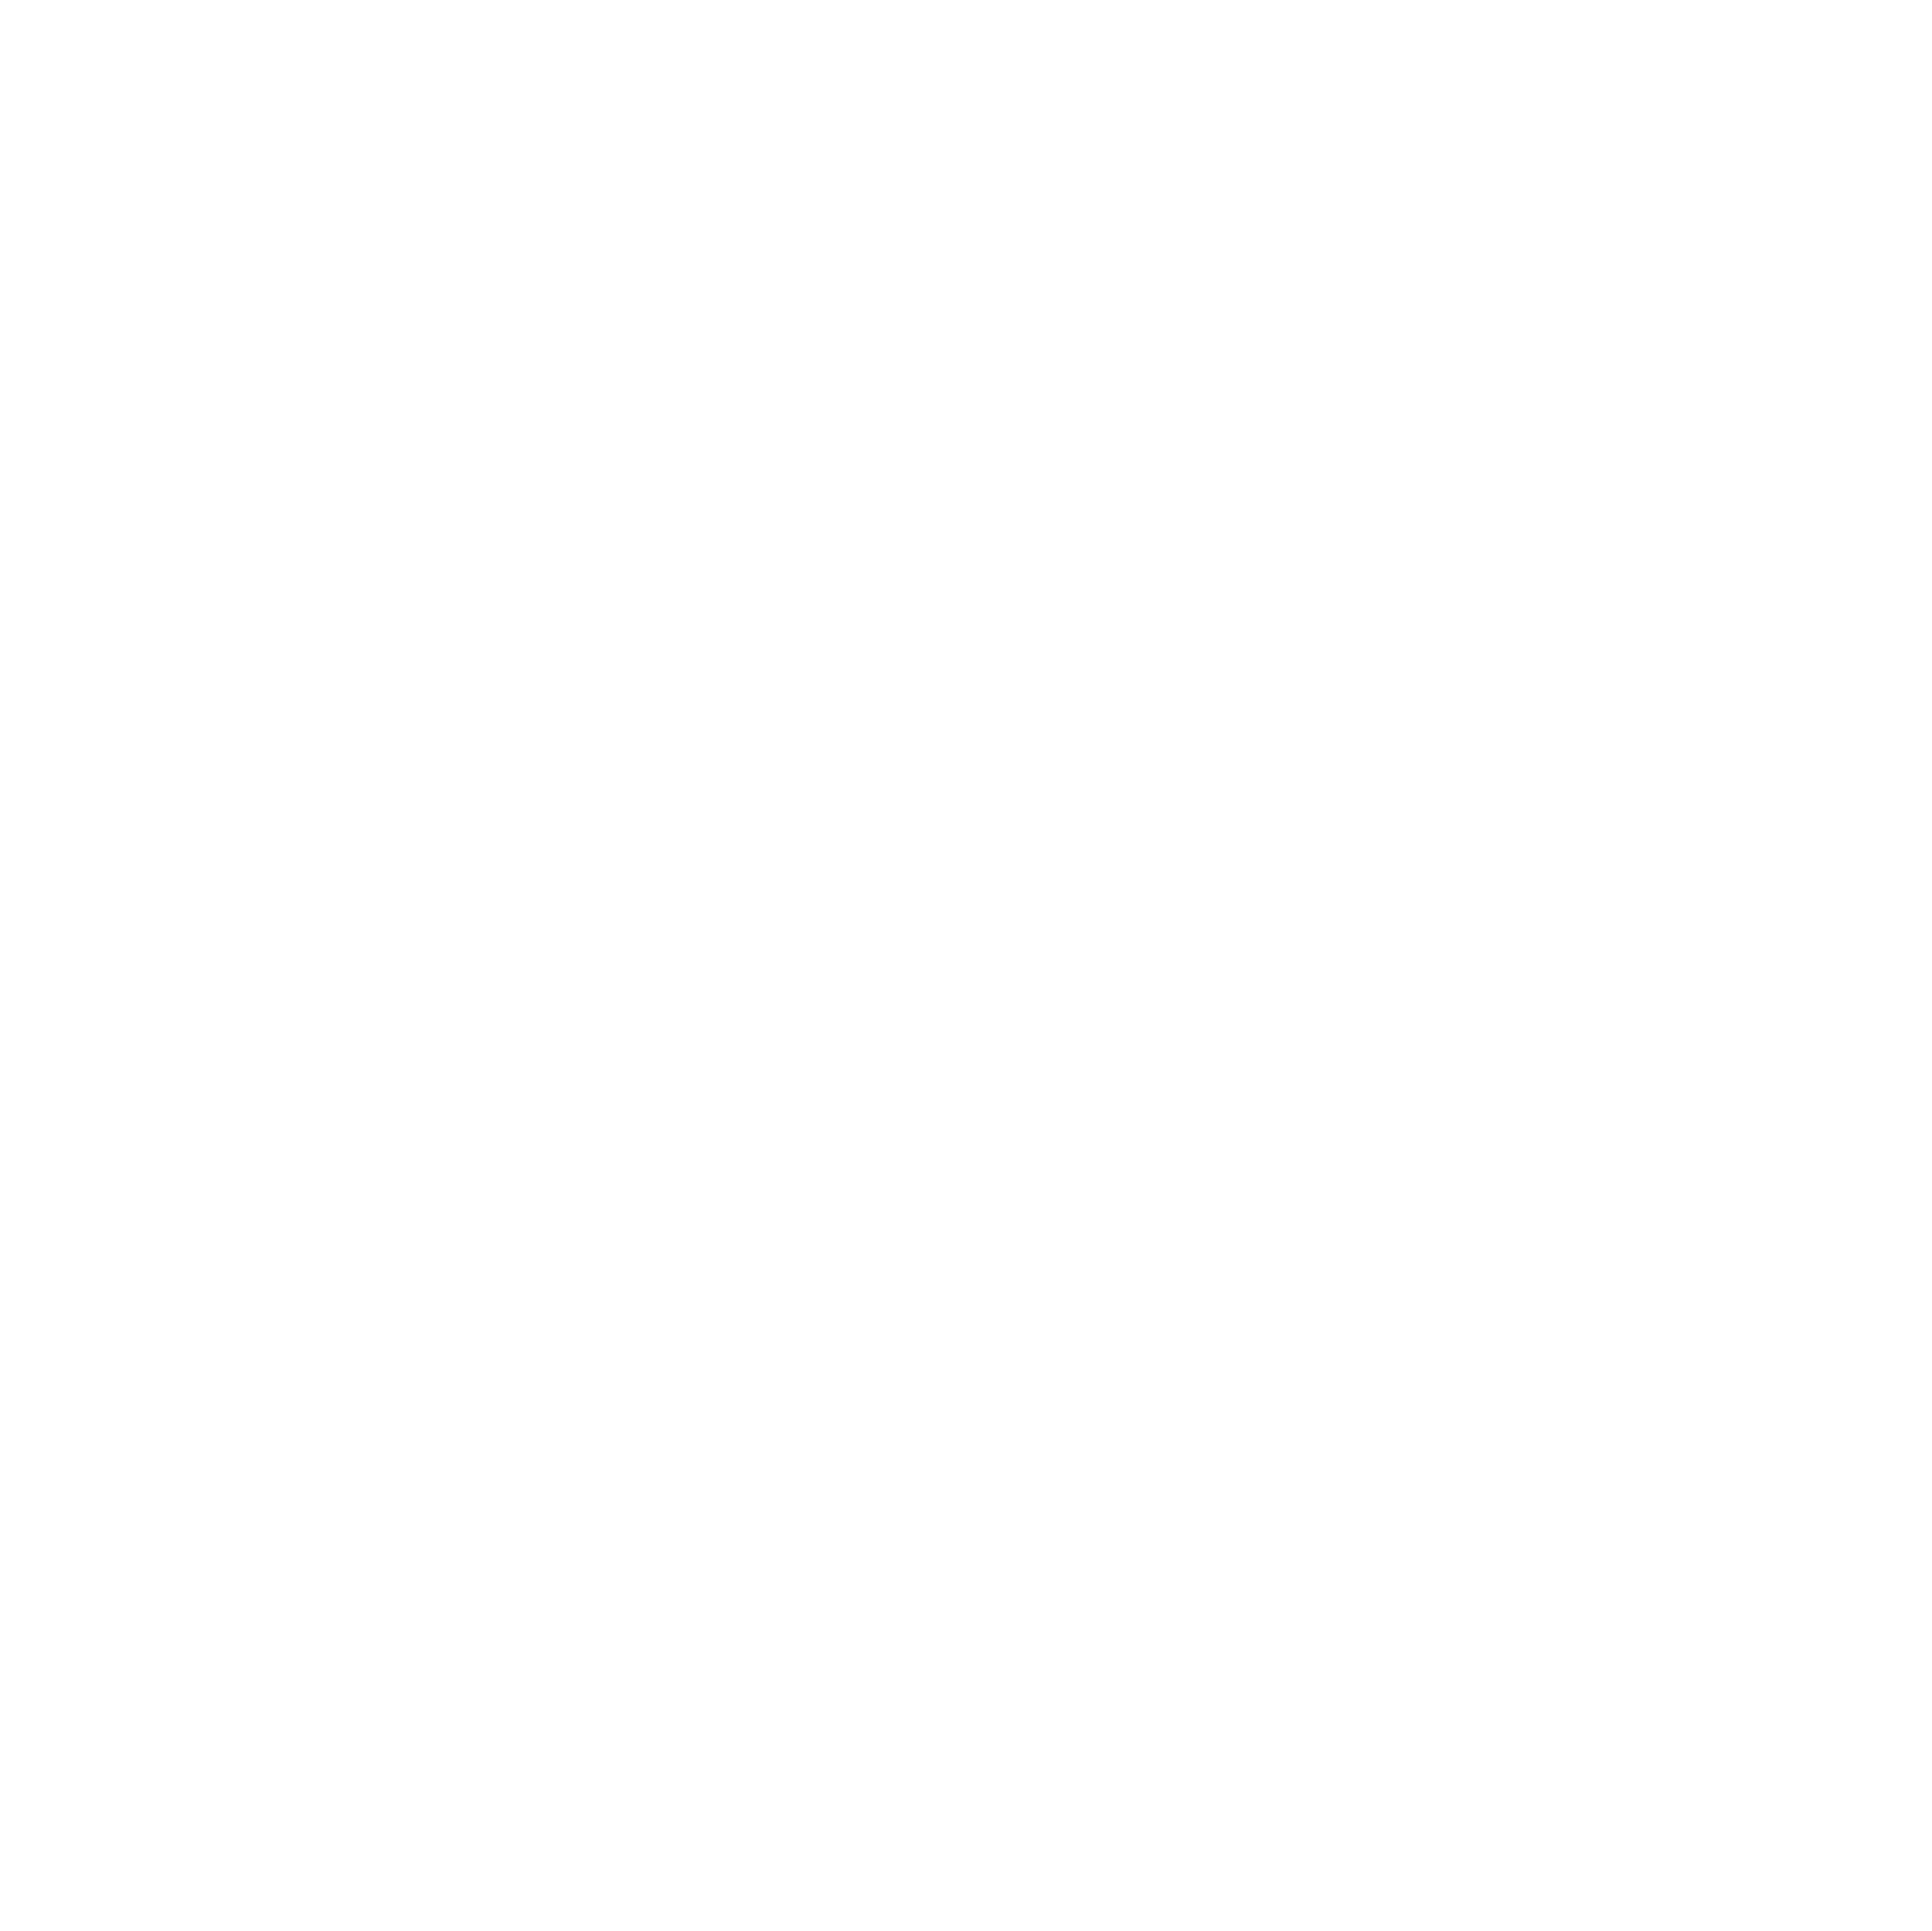 SAMO is the resident visual artist for the monthly  Nightworks  Show in Boston, MA